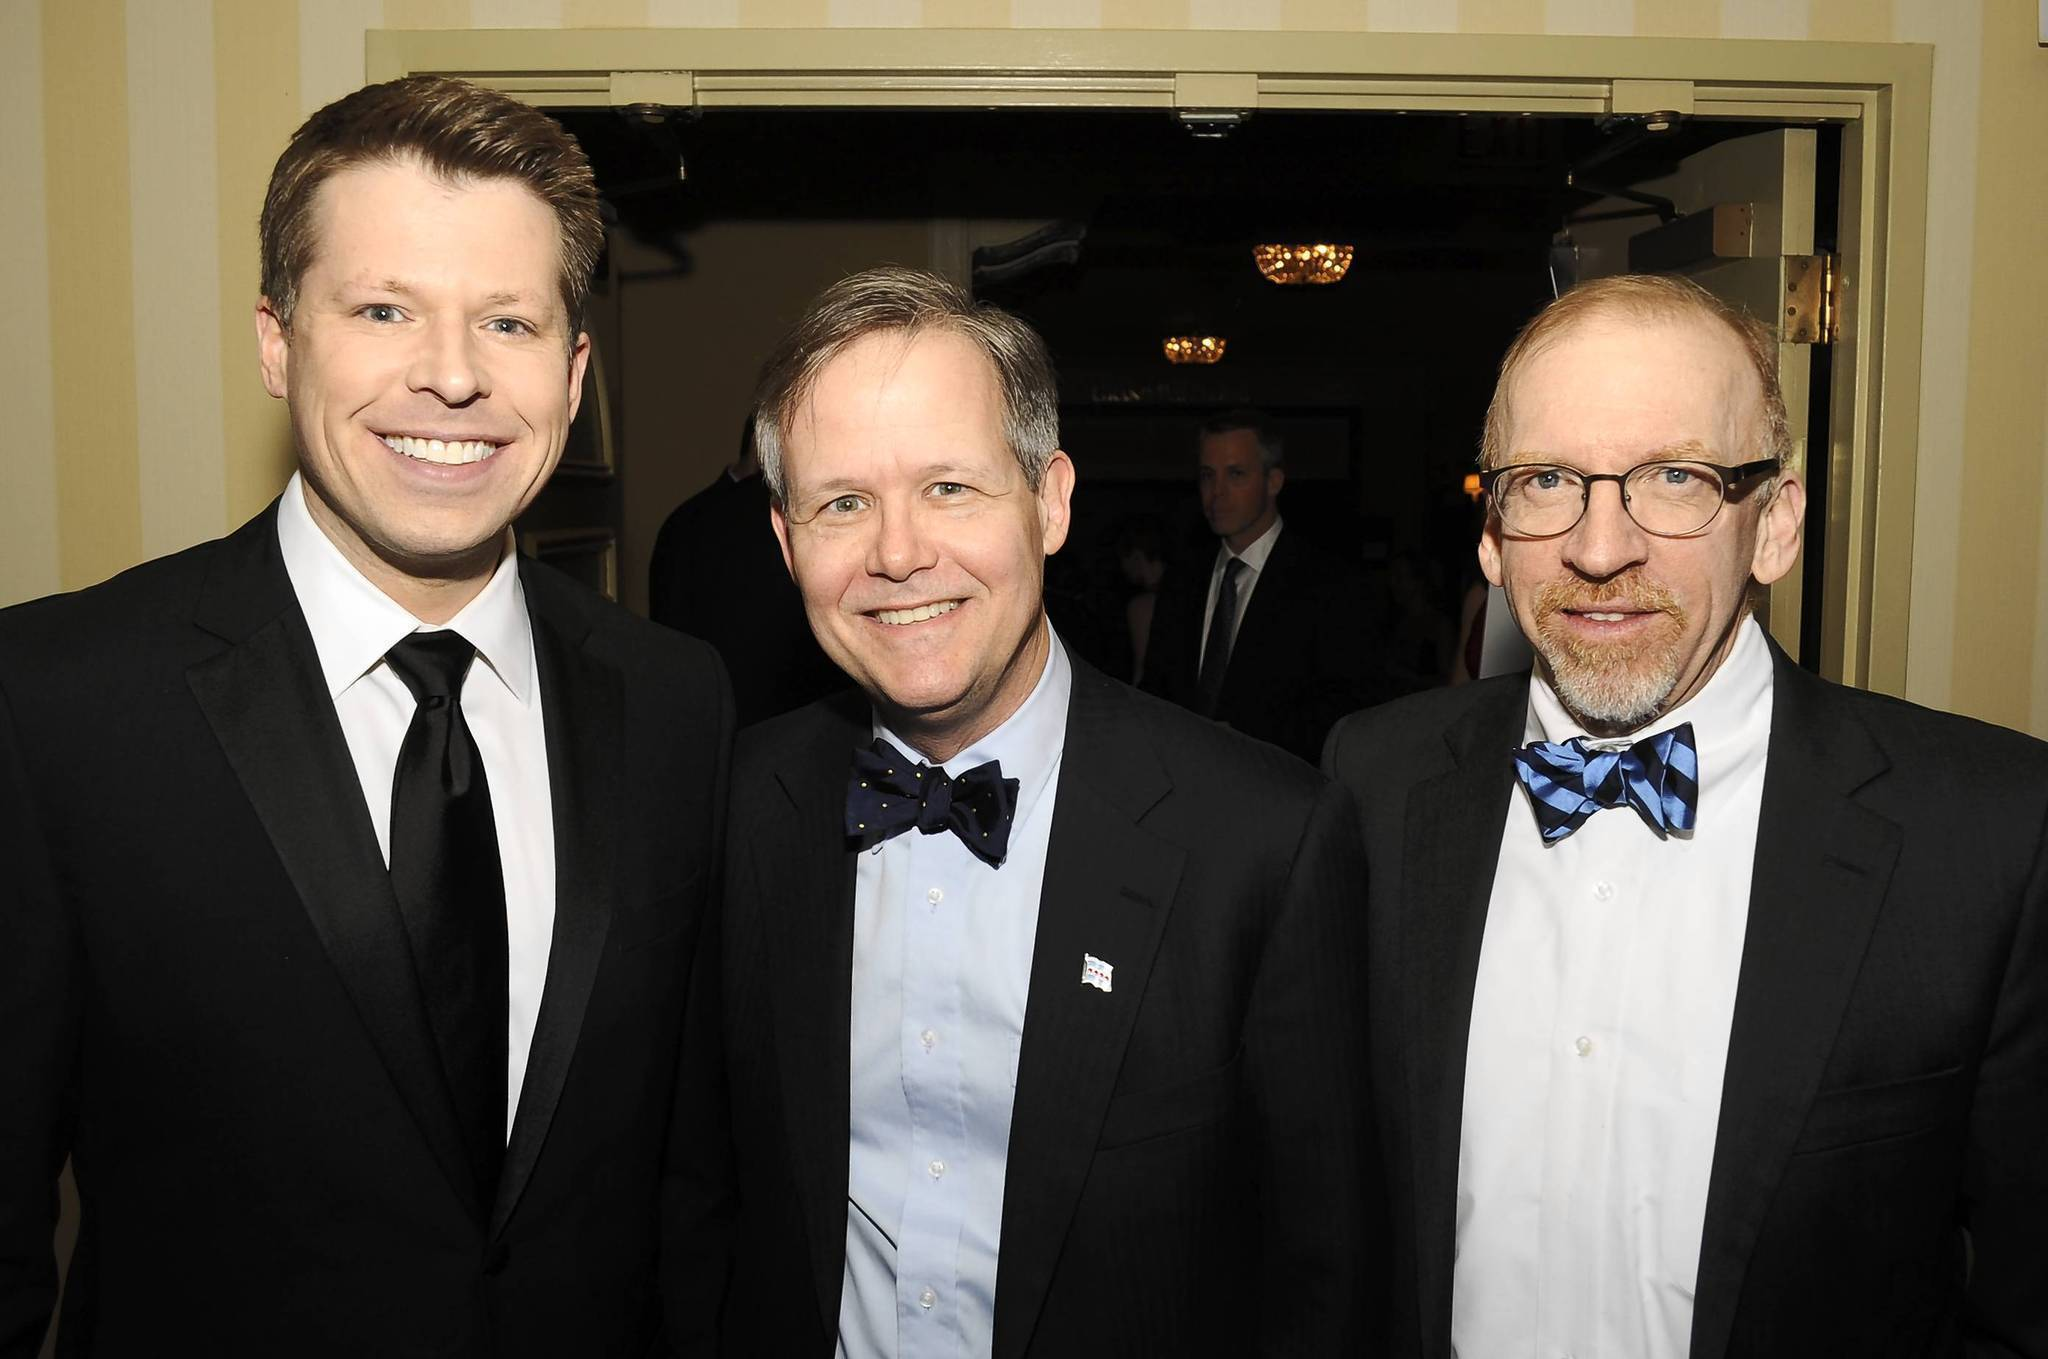 Sean Lewis, Alderman James Cappleman, and Richard Thale at the Children's Advocacy Center Gala.